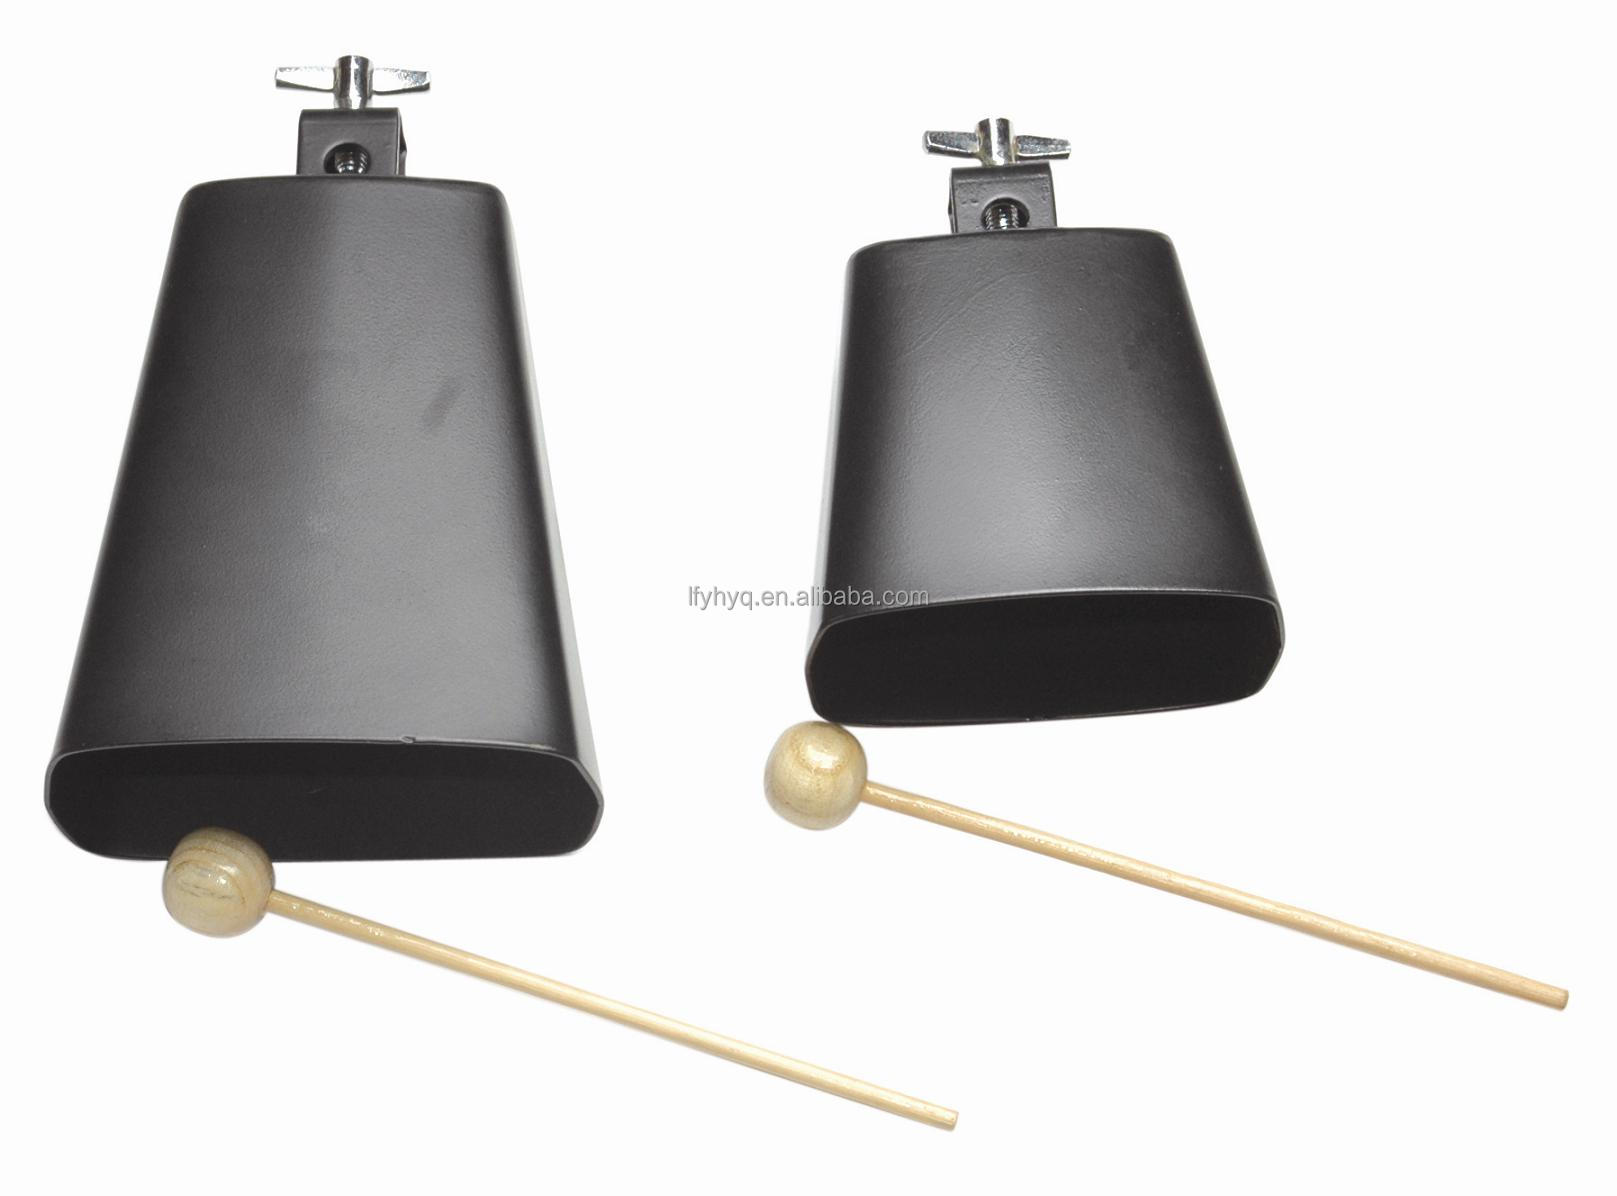 plastic small Cowbell education musical instruments percussion music toys